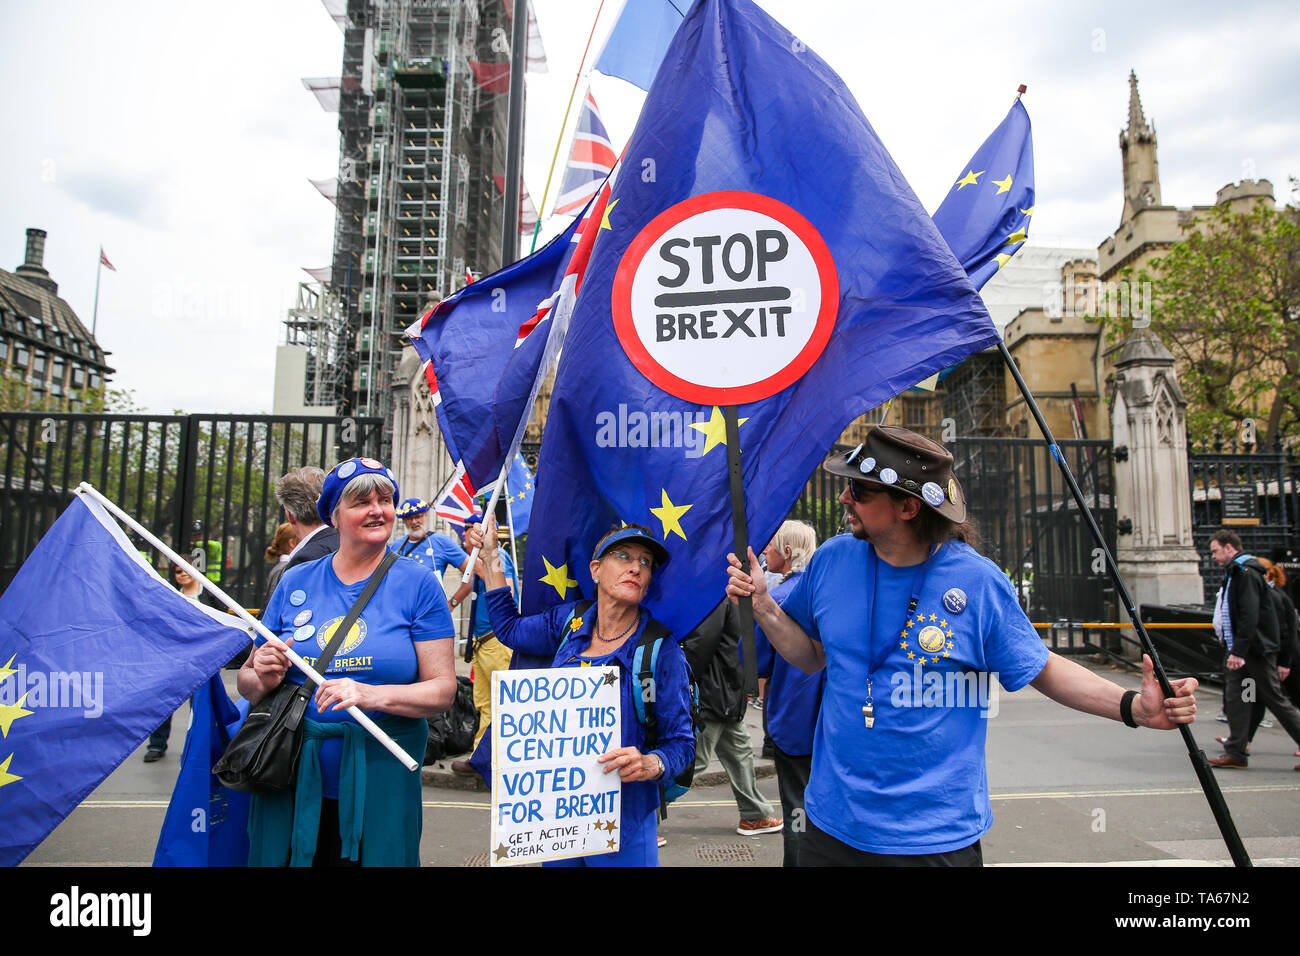 London, UK, UK. 22nd May, 2019. Anti-Brexit demonstrators are seen holding European Union Flags while protesting outside the Houses of Parliament in Westminster, London on the eve of the European Parliament elections. Credit: Dinendra Haria/SOPA Images/ZUMA Wire/Alamy Live News - Stock Image